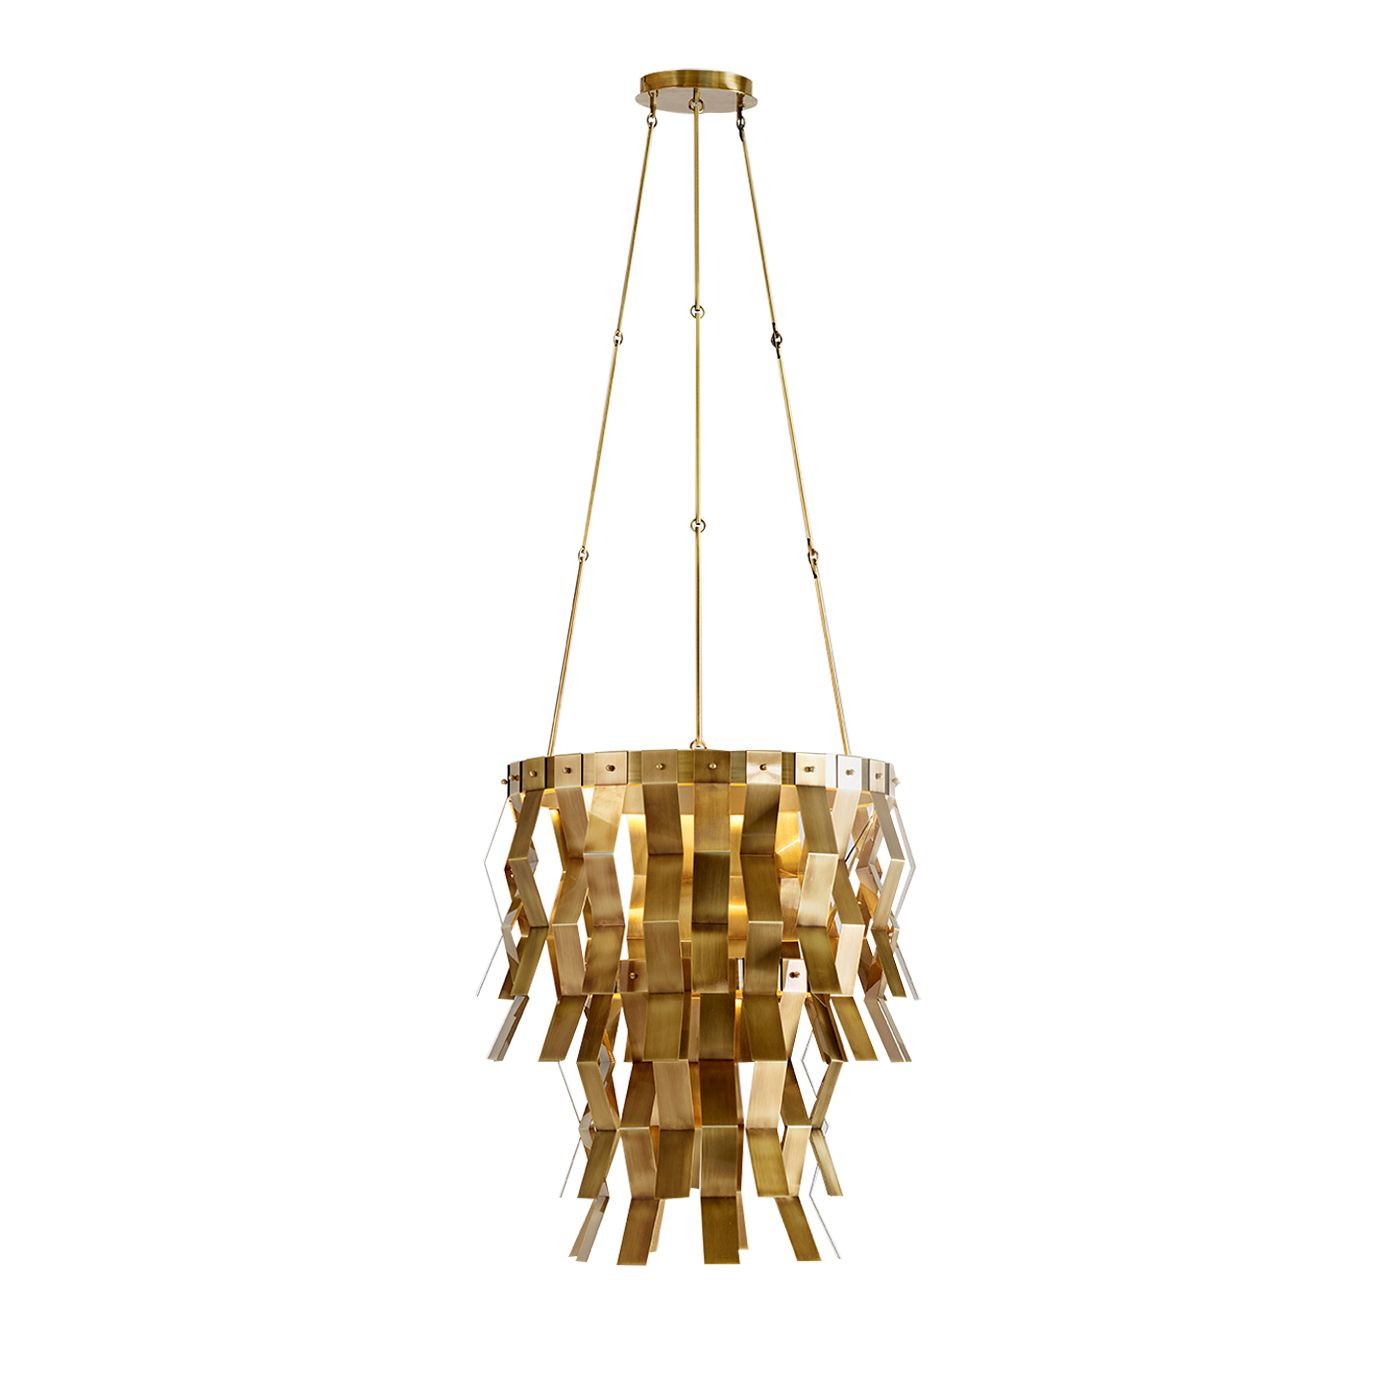 timeless lighting. veronica light fixture - shop timeless lighting handcrafted in italy: chandeliers, pendant lamps,